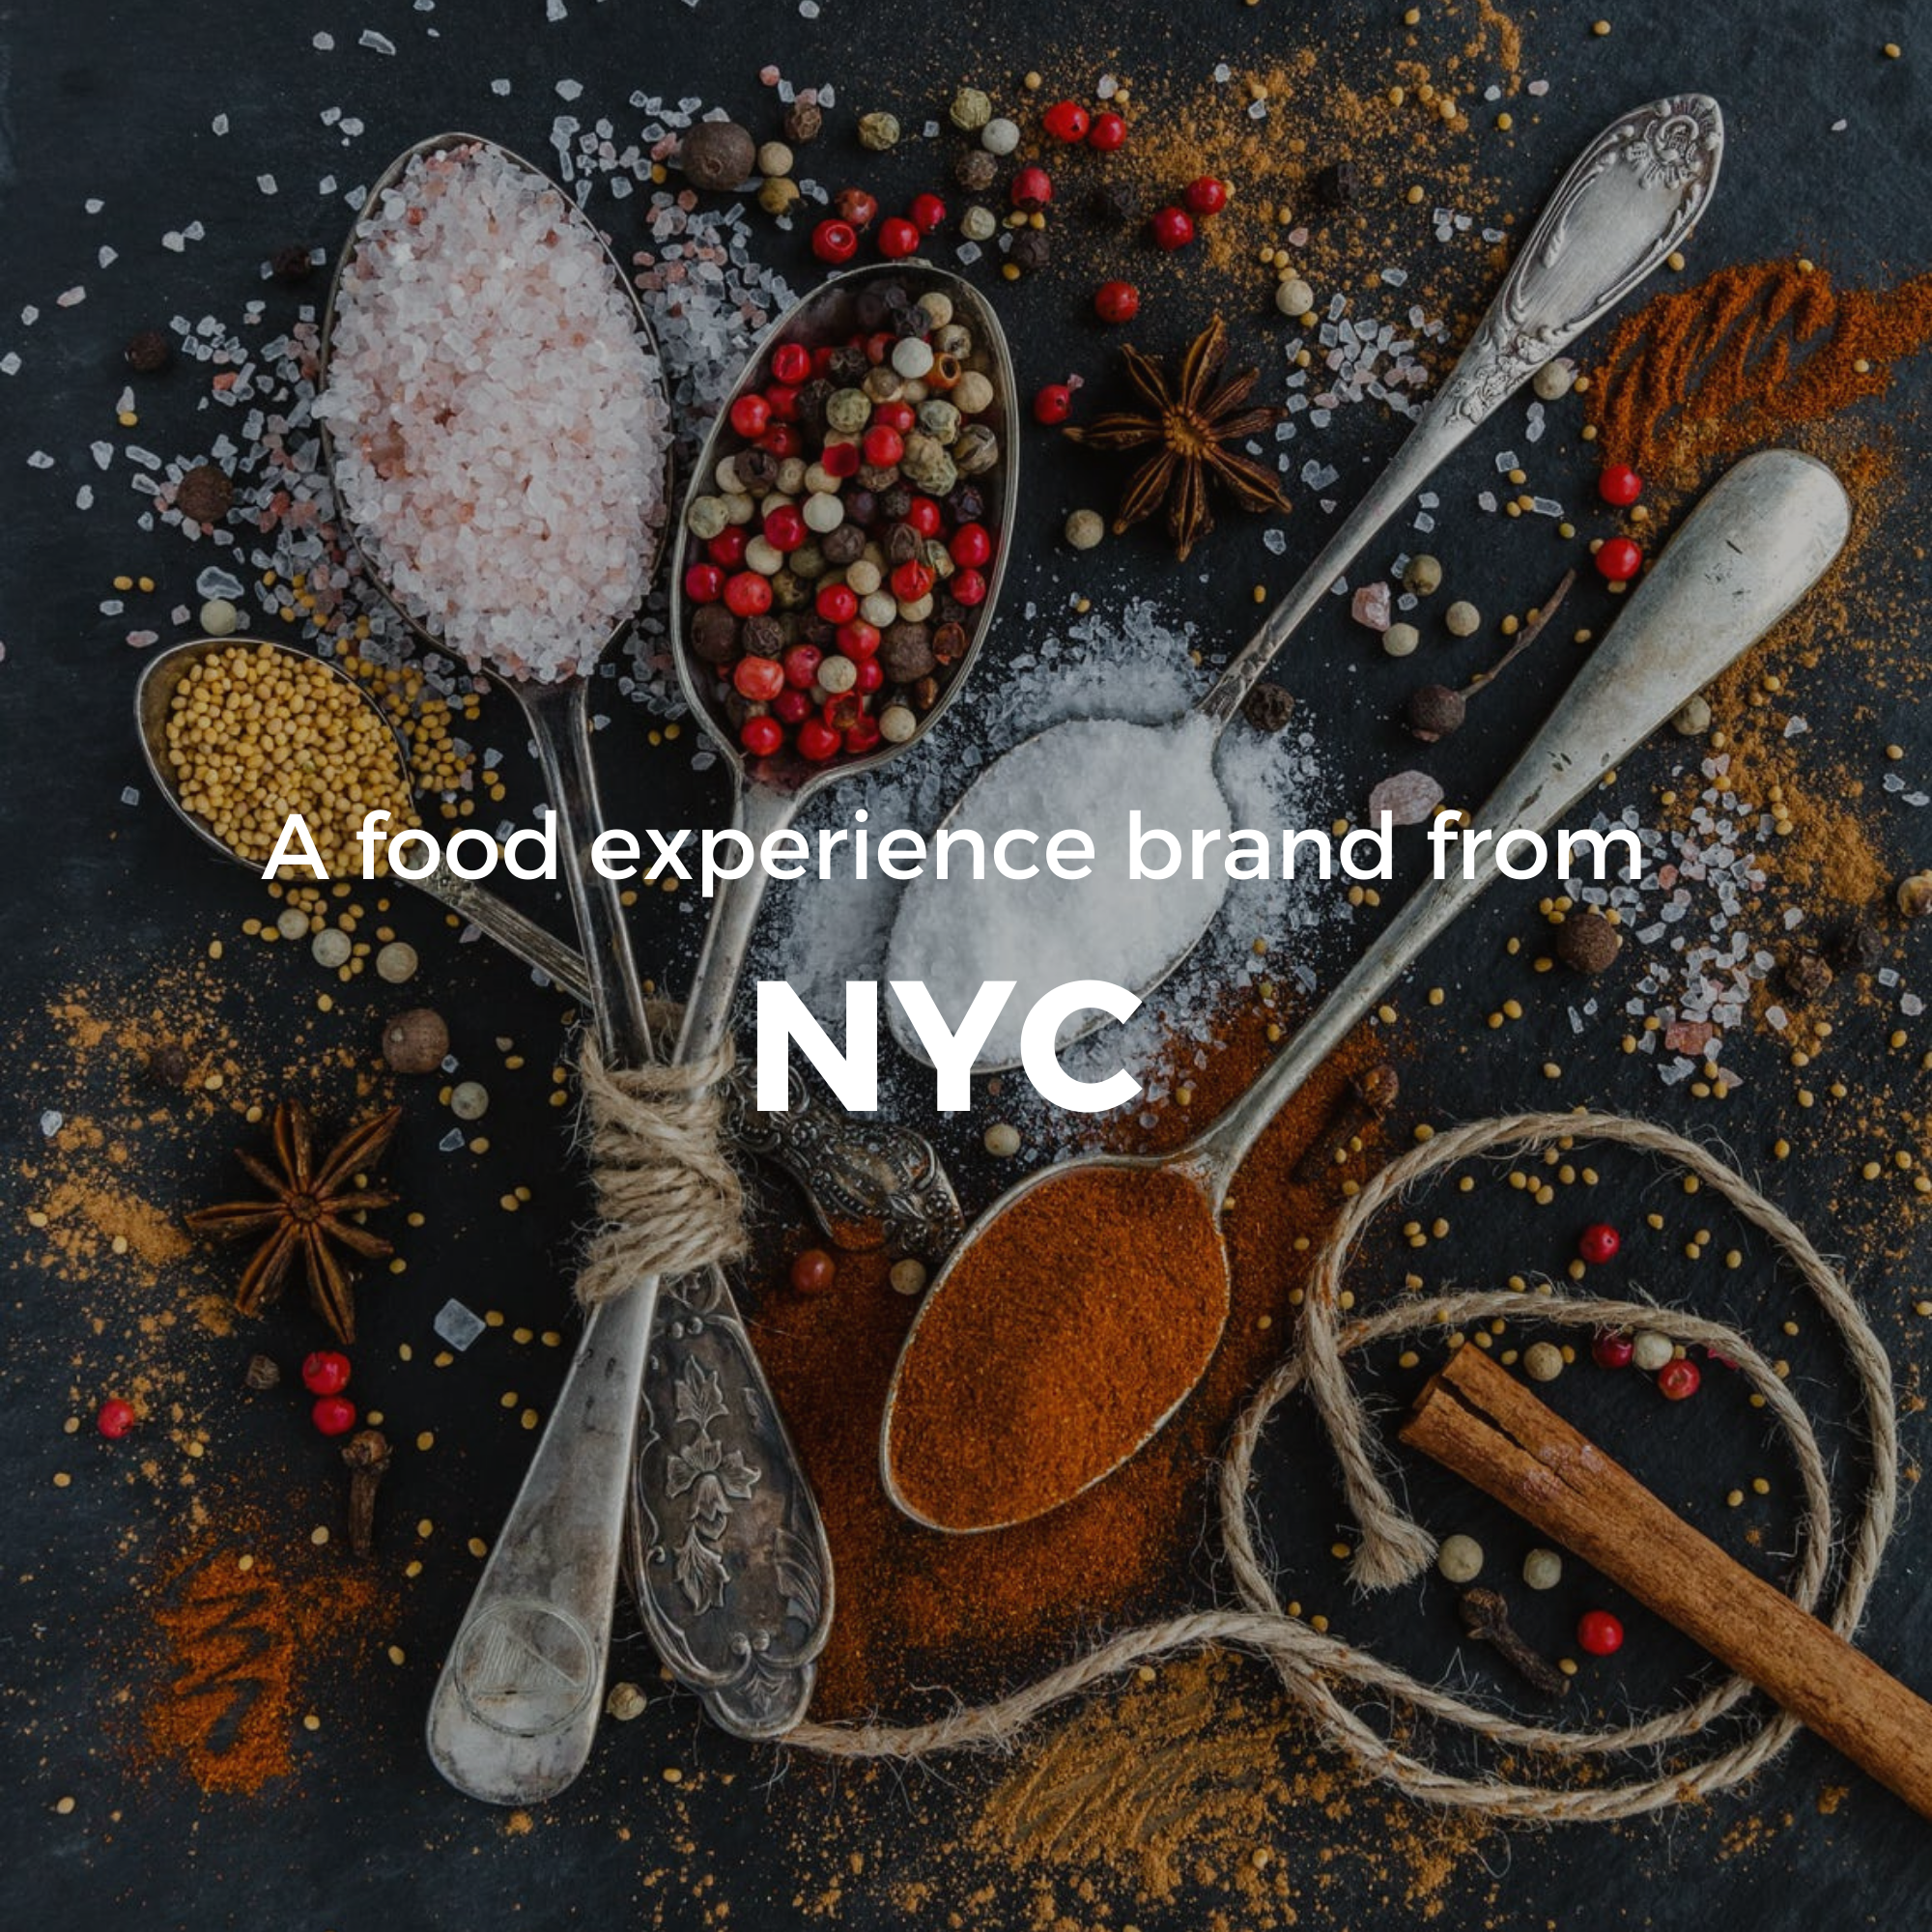 food experience brand